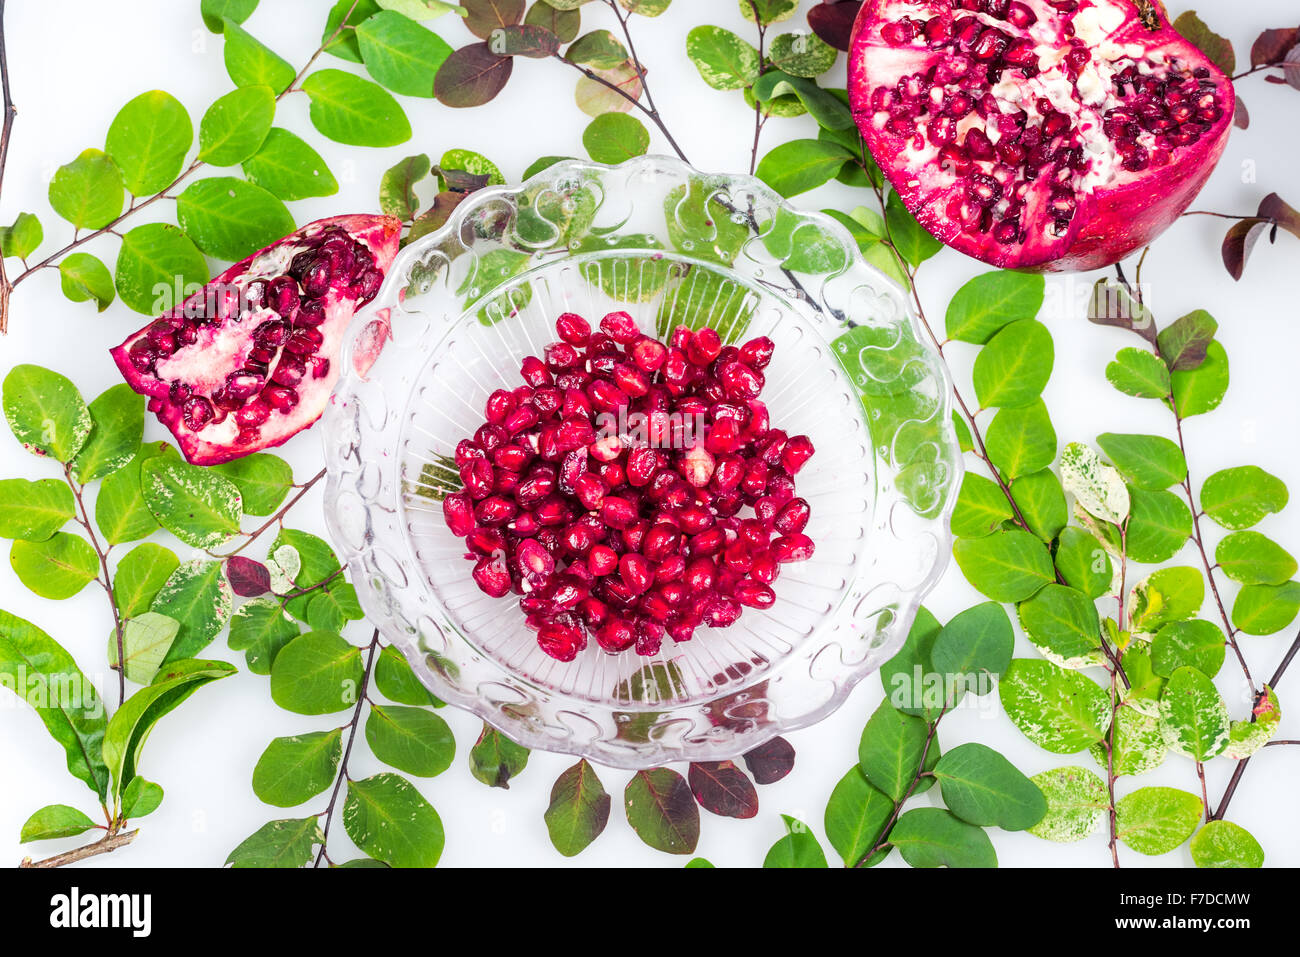 Pomegranate Seed in the bowl and green leaves - Stock Image